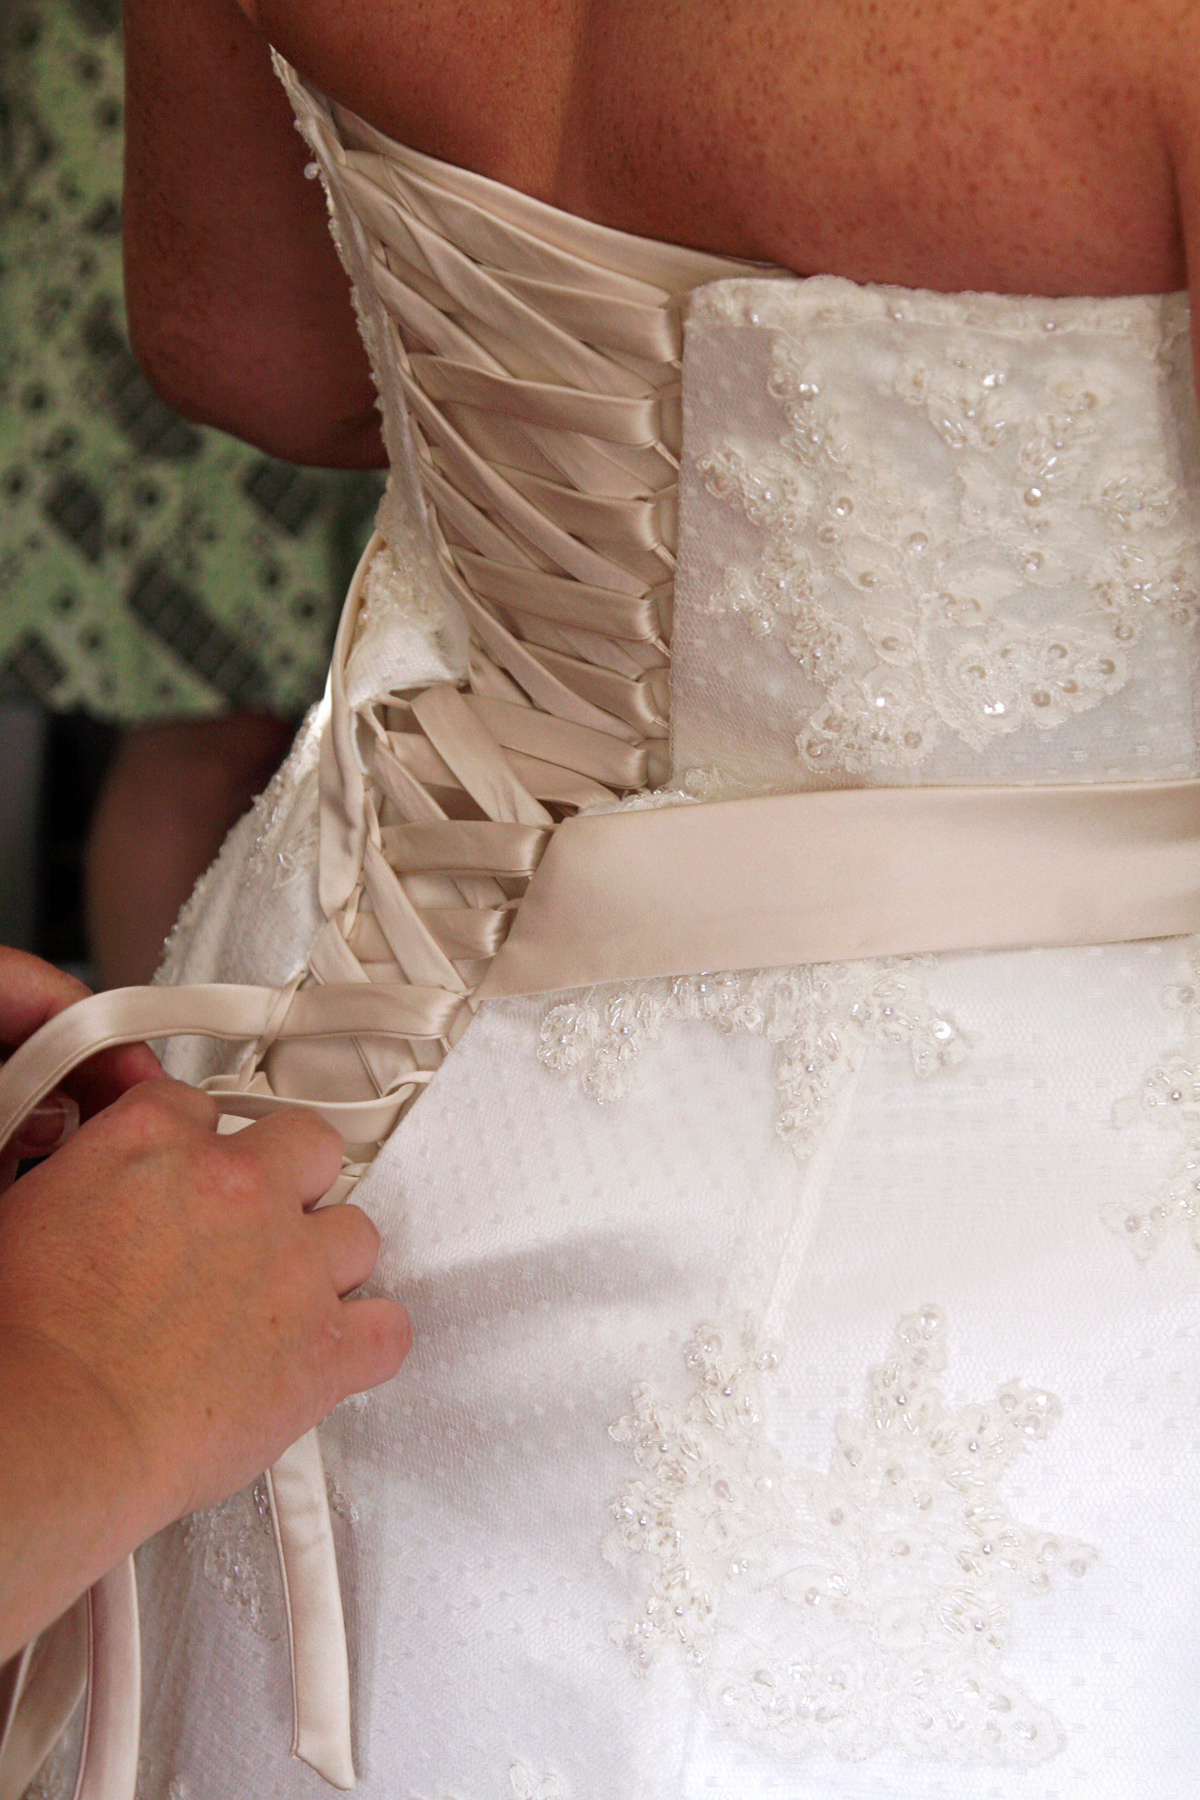 Tying of the wedding gown